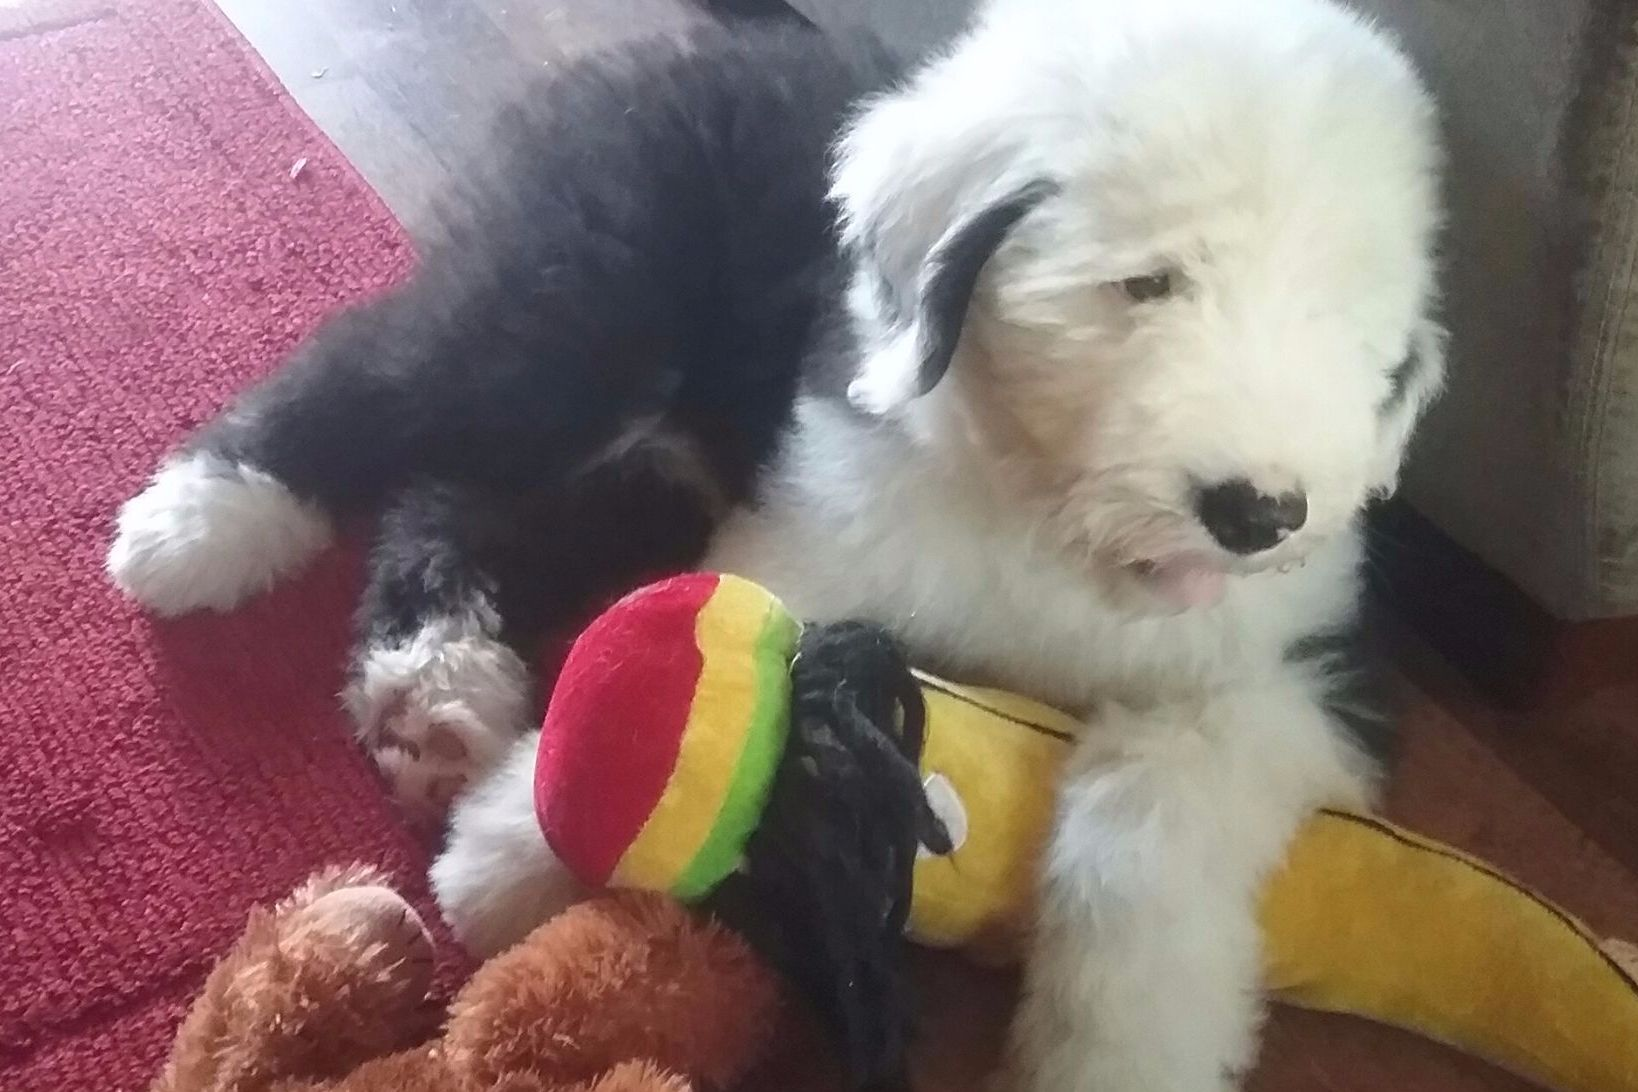 Lori Harding Has Old English Sheepdog Puppies For Sale In Osceola In On Akc Puppyfinder Old English Sheepdog English Sheepdog Old English Sheepdog Puppy